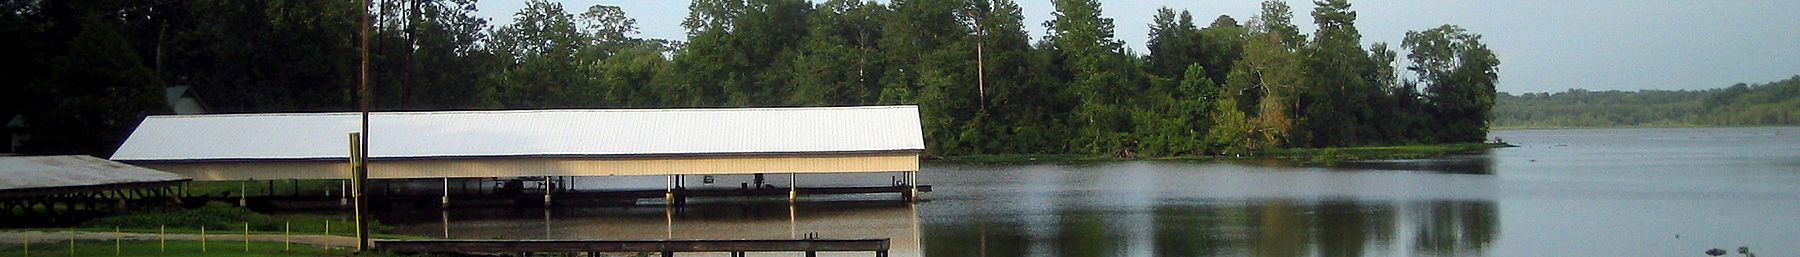 Gulf Coast Mississippi banner Masonite Lake.jpg